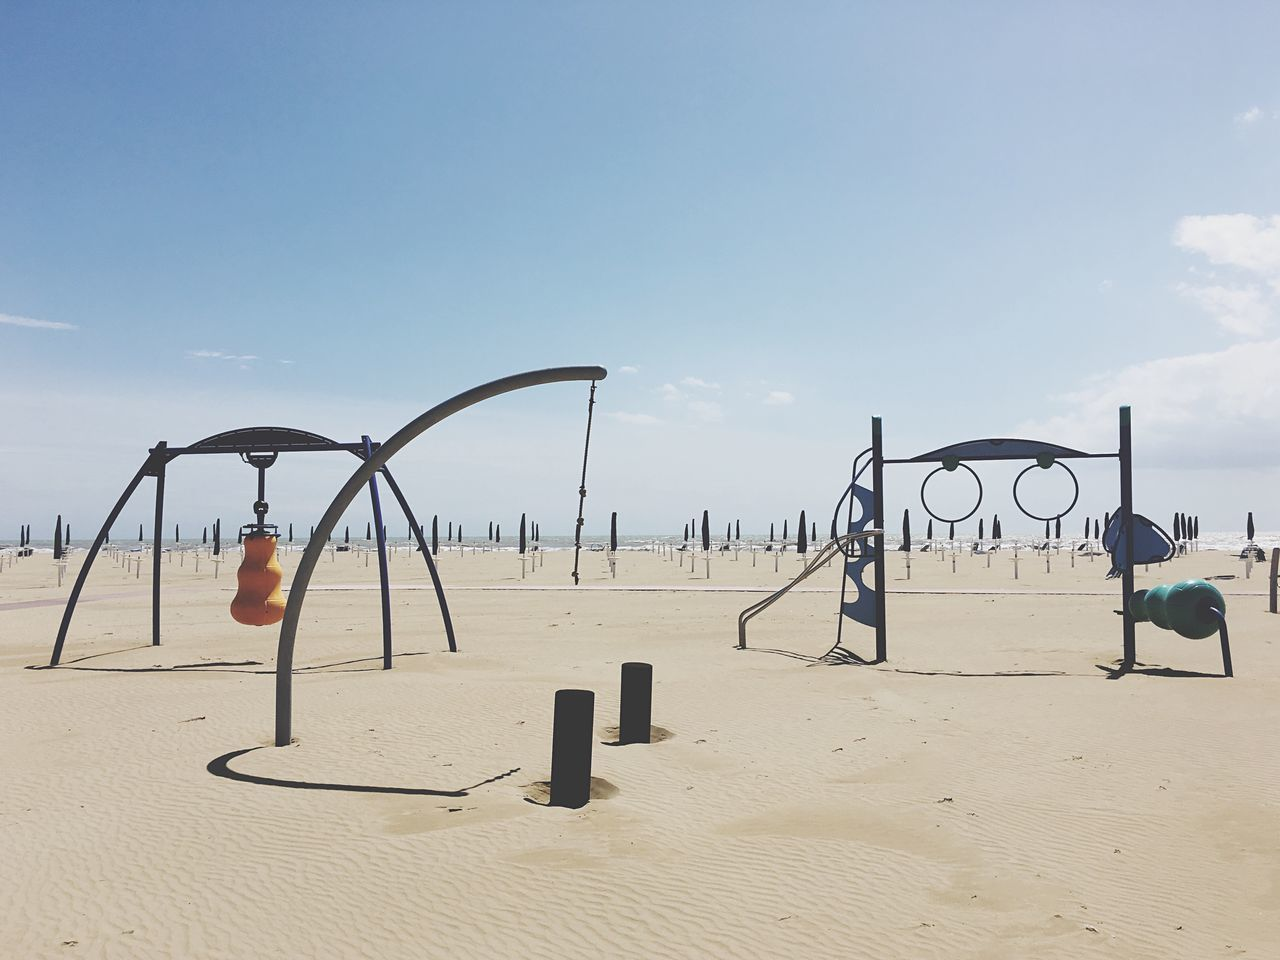 sand, beach, childhood, day, playground, outdoors, no people, sky, nature, sea, horizon over water, water, beach volleyball